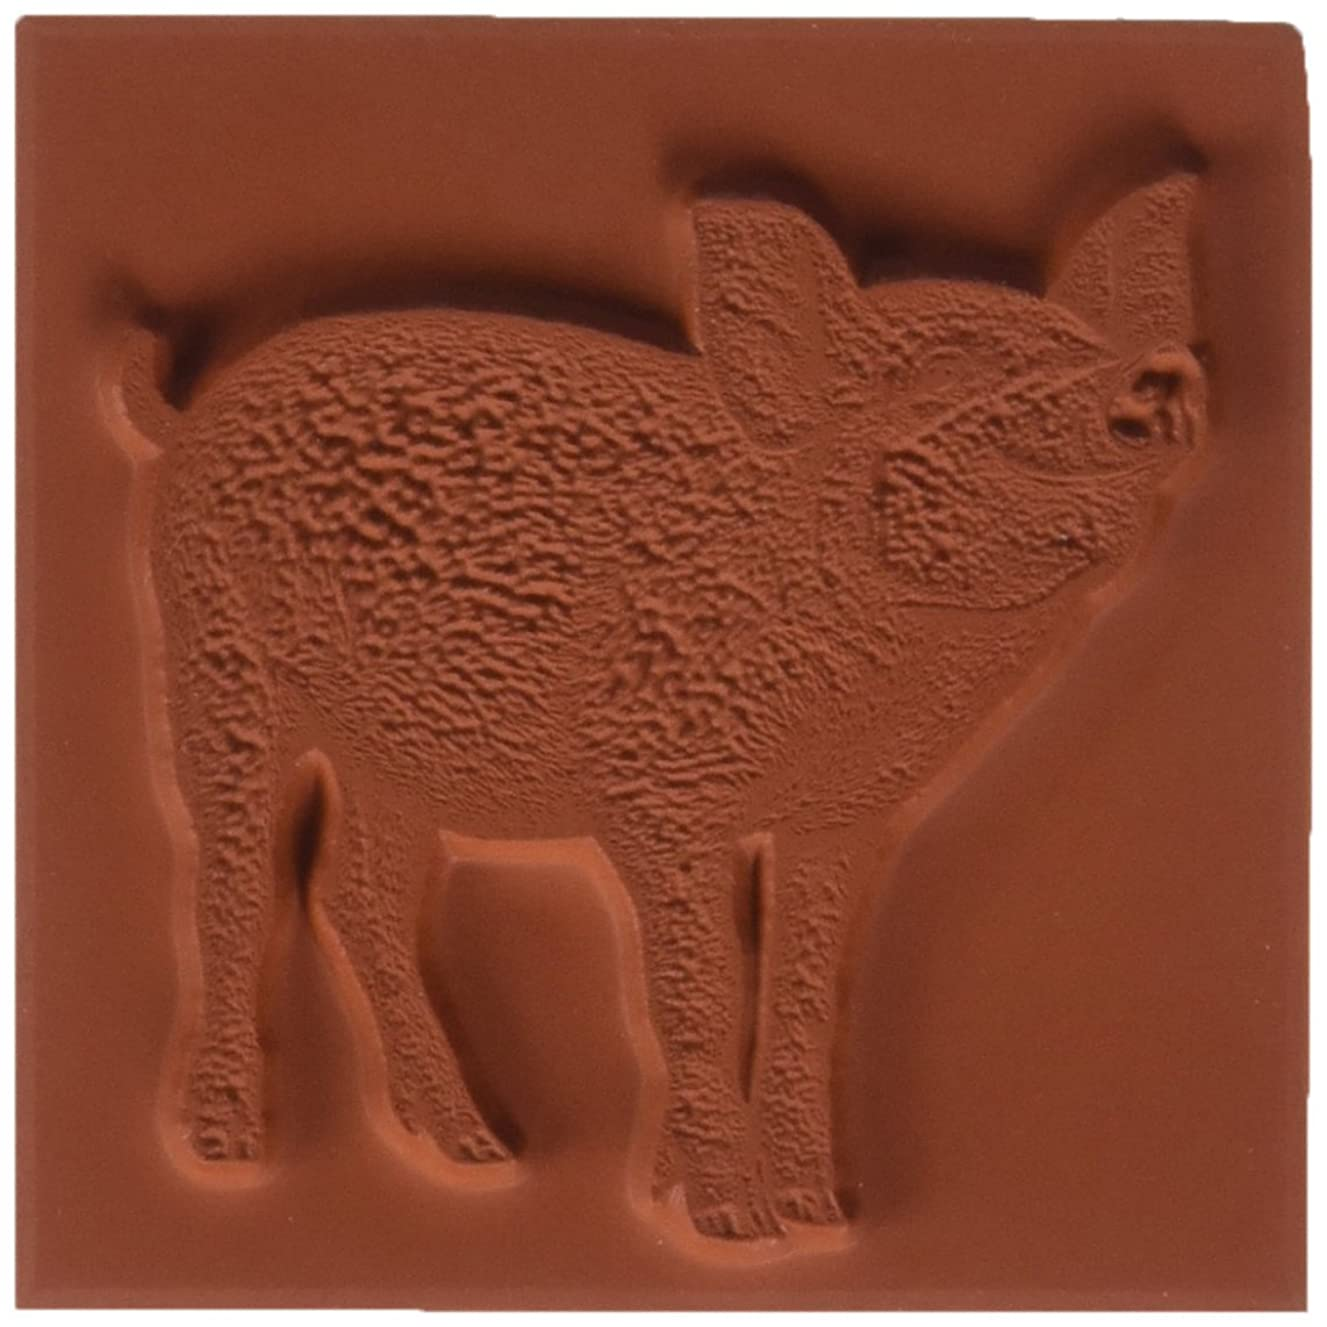 Deep Red Stamps 3X405507 Cling Stamp, 2